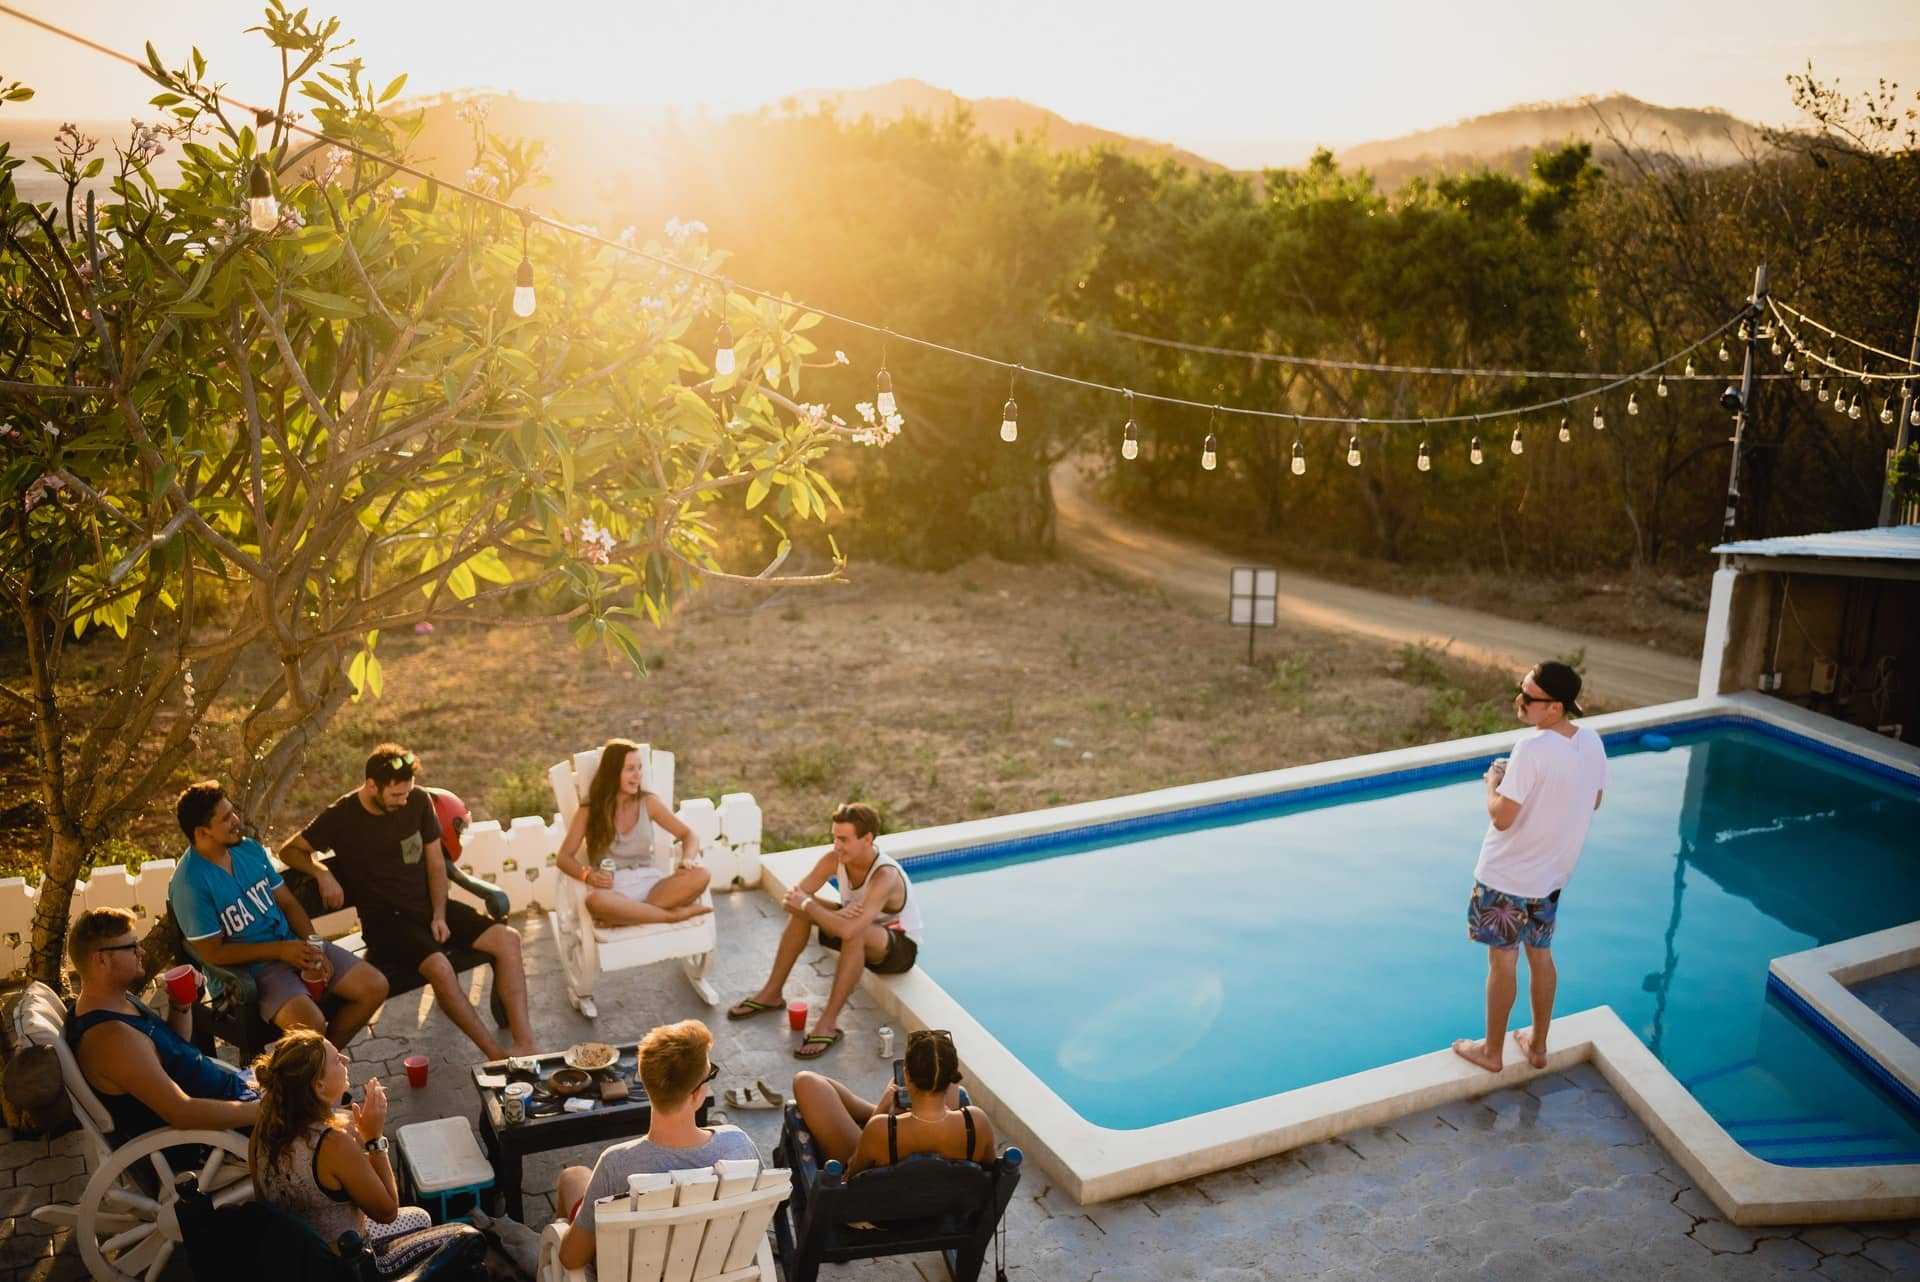 hosting a barbeque party